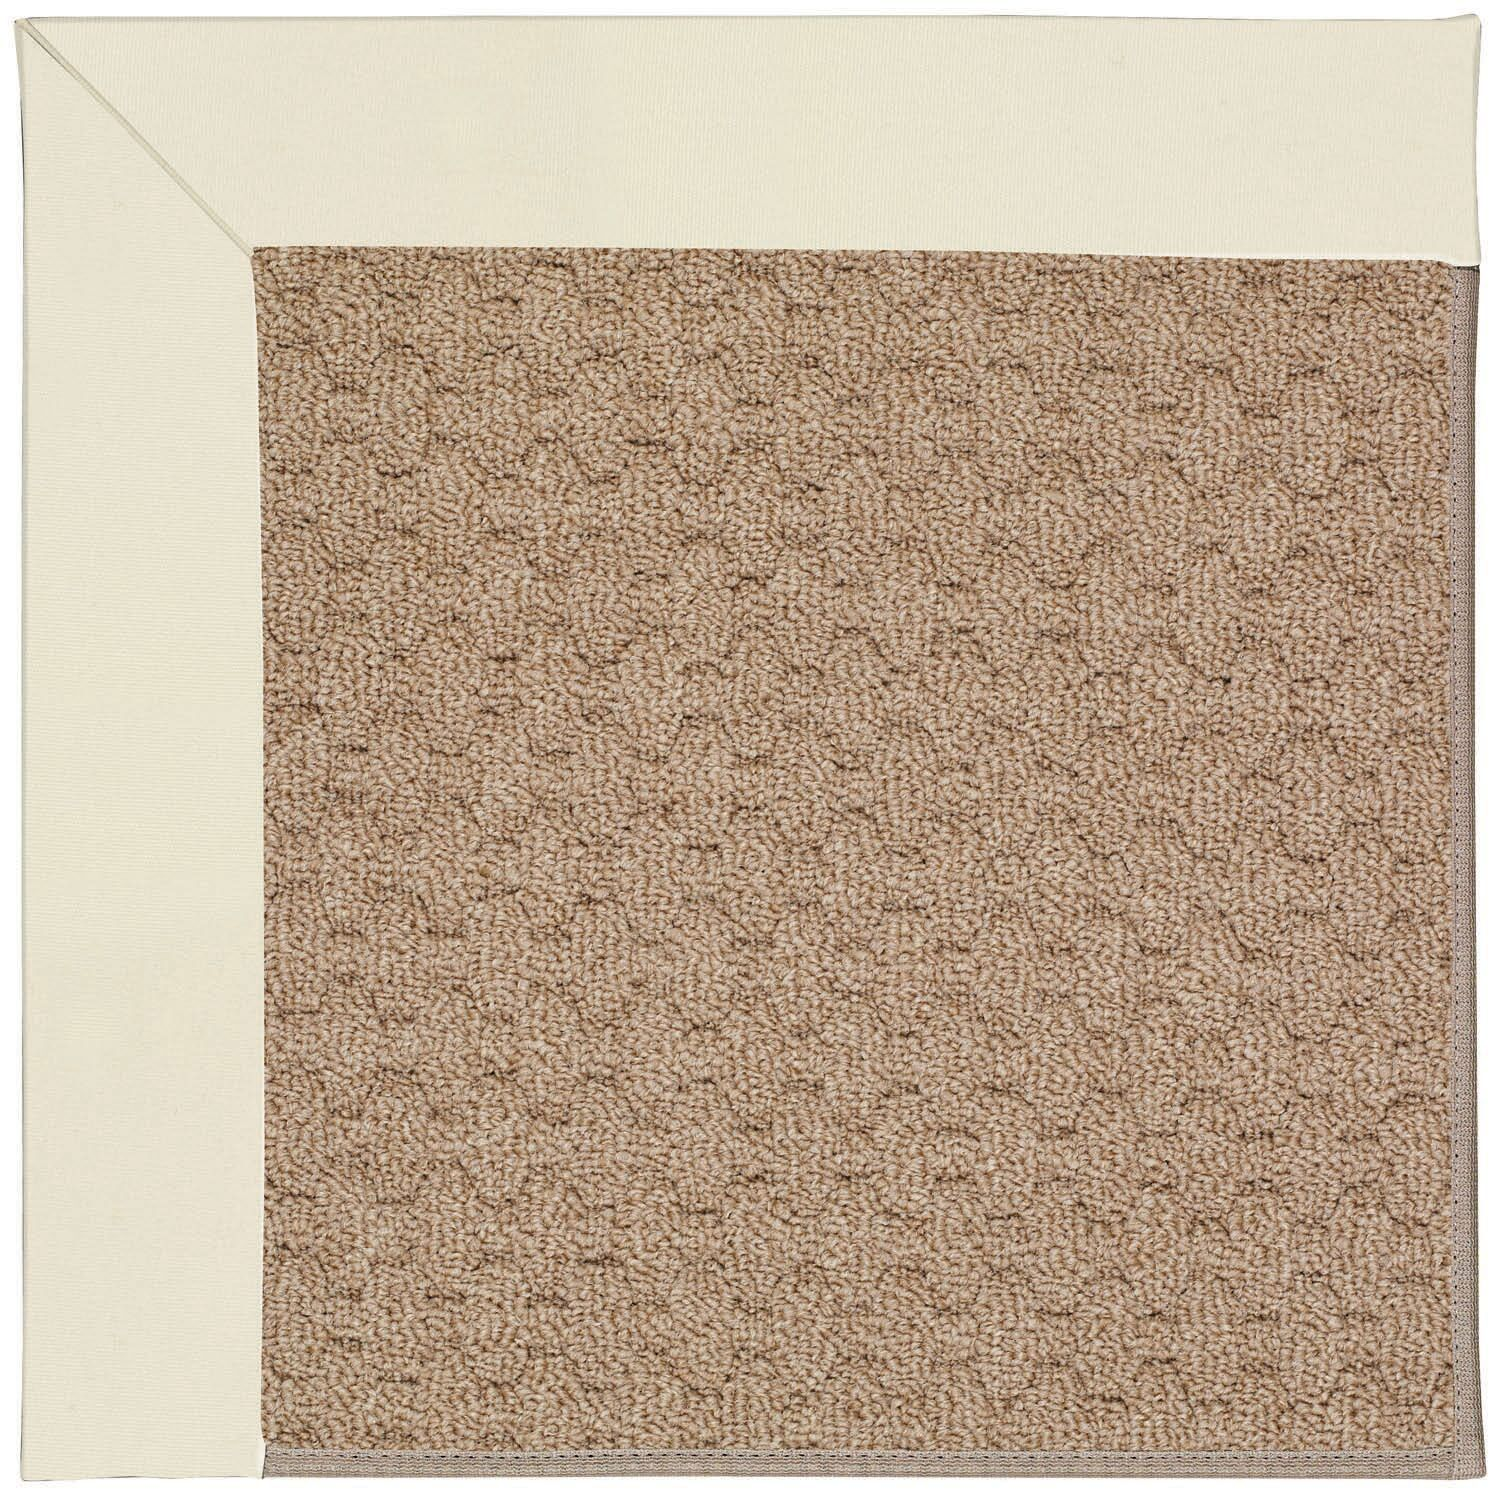 Lisle Machine Tufted Alabaster/Brown Indoor/Outdoor Area Rug Rug Size: Rectangle 4' x 6'